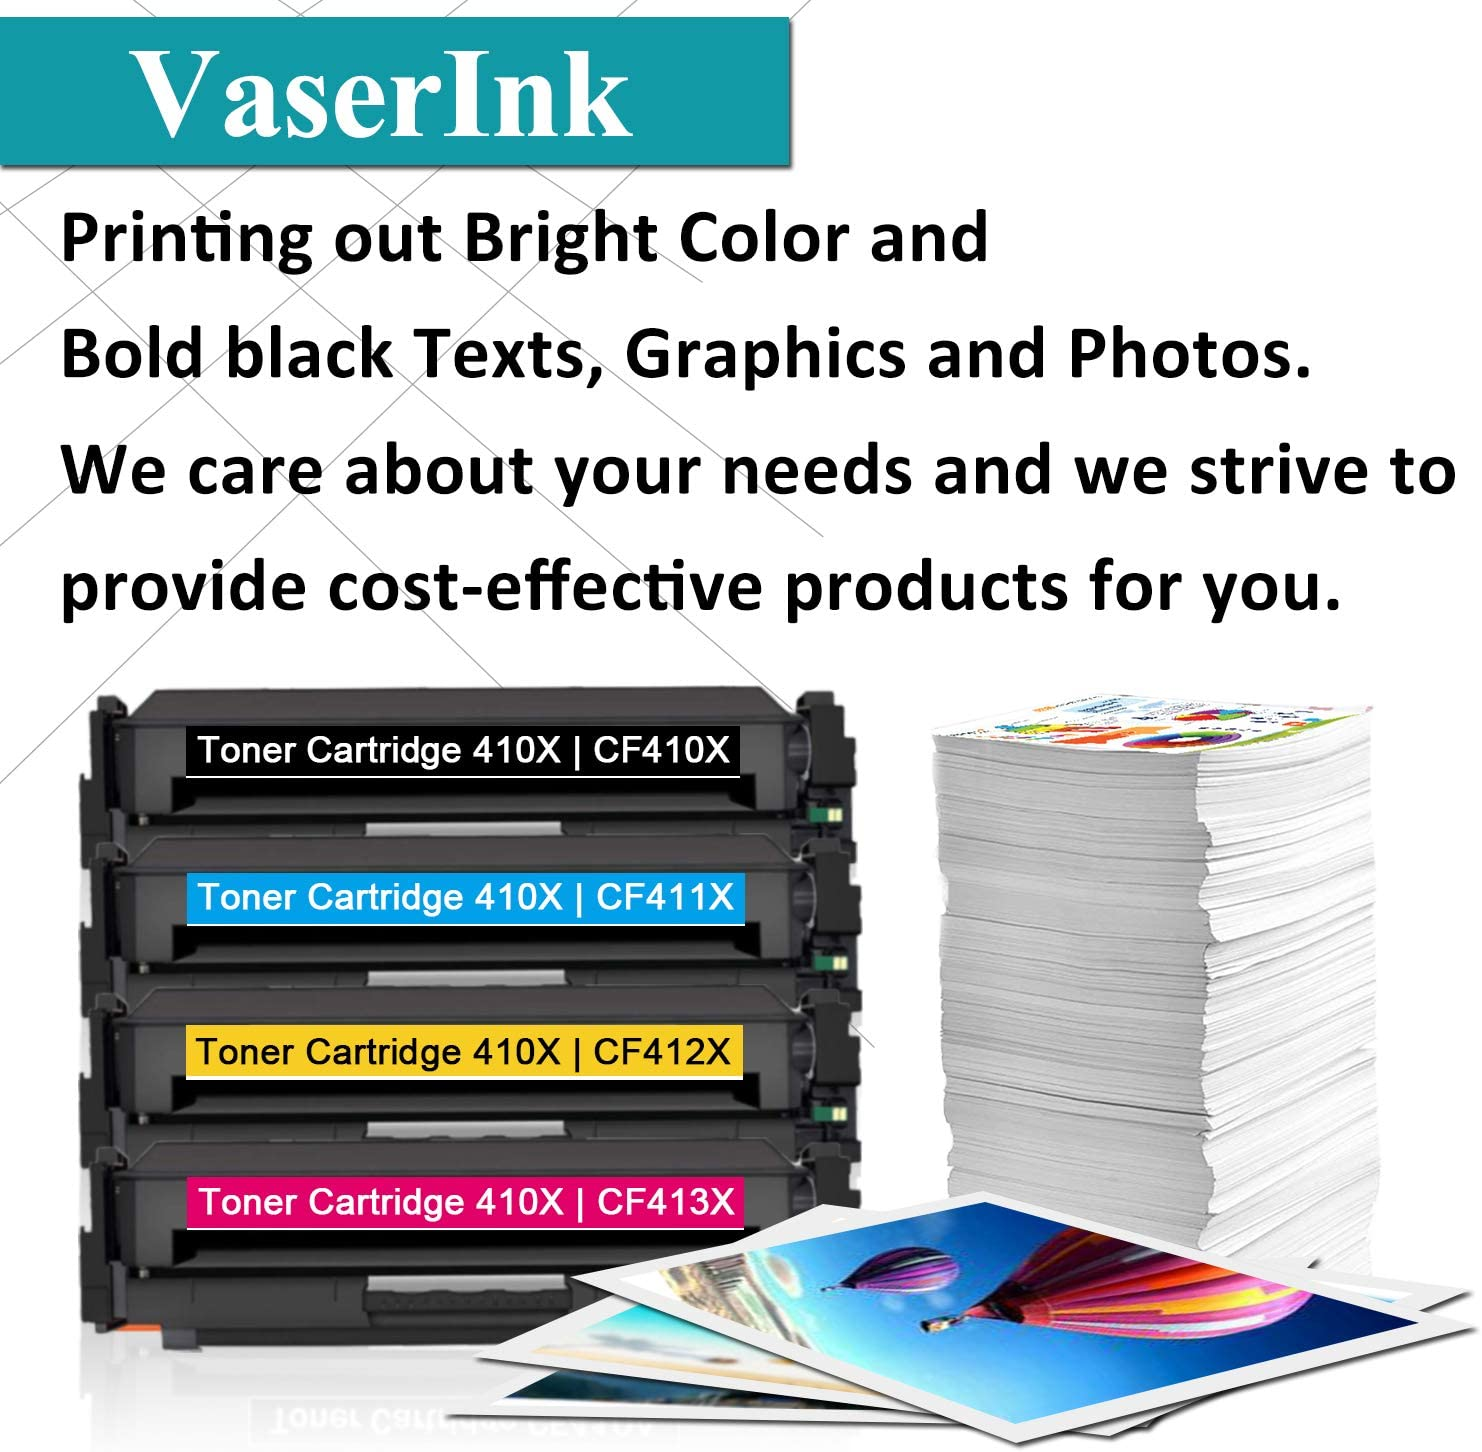 by VaserInk CF411X Cyan Toner Cartridge Replacement for HP Color Laserjet Pro MFP M477fdn M477fdw M477fnw Pro M452dn M452dw M452nw Printer Toner 1-Pack High Yield 410X